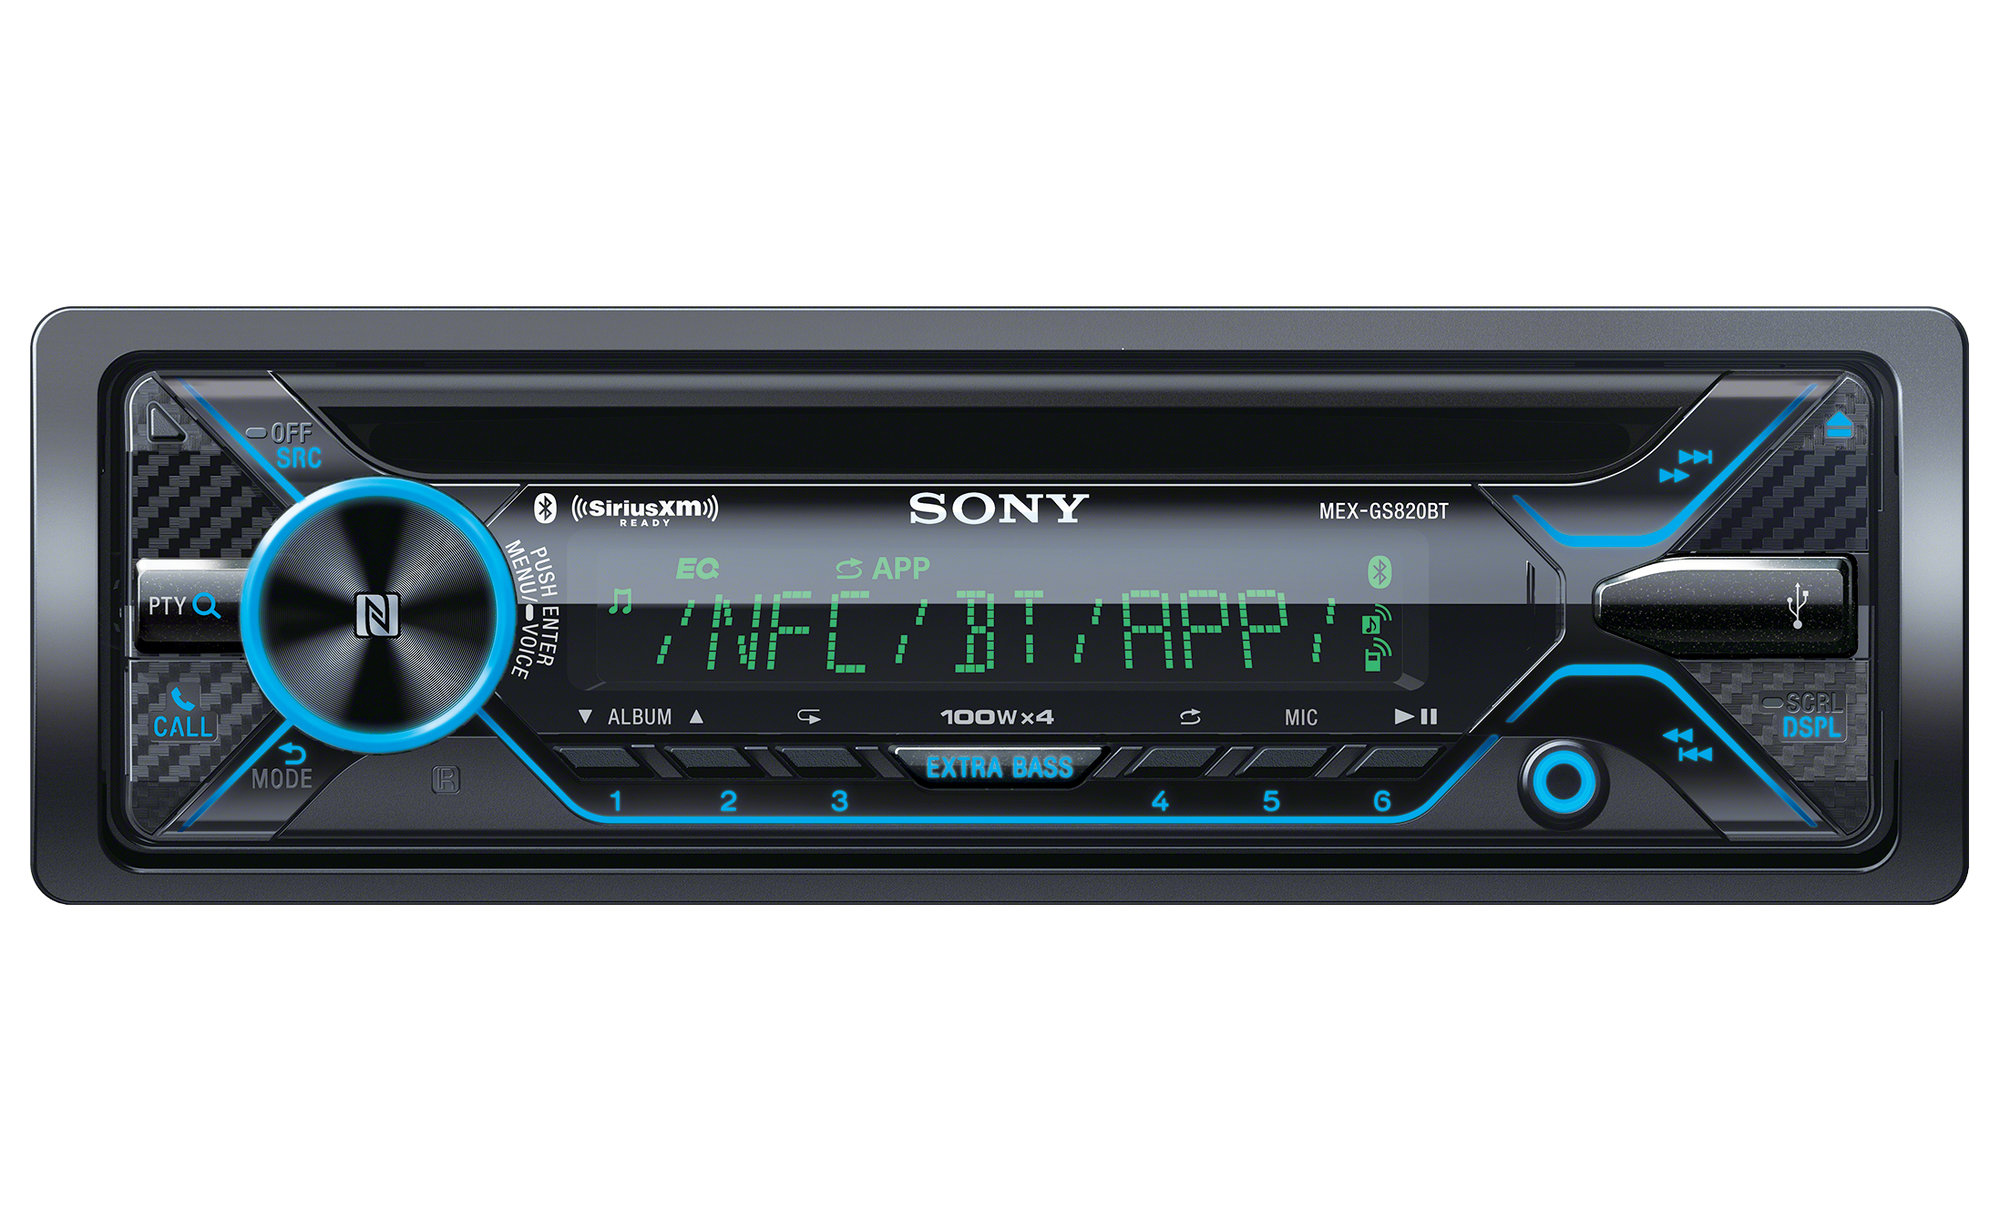 Sony Mex Gs820bt Cd Receiver With Bluetooth